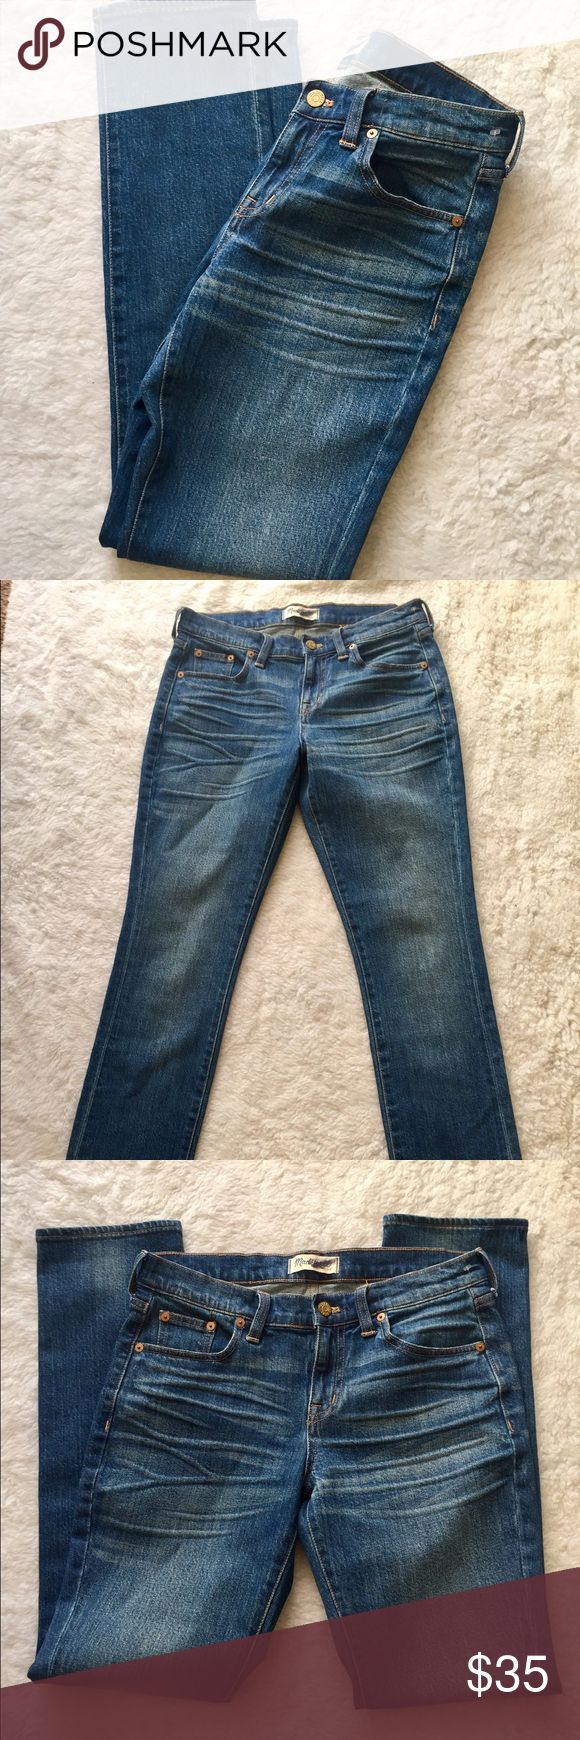 Madewell Women's Straight Jeans size 26 In perfect preowned condition. No stains tears or damages. Size 26 Madewell Jeans Straight Leg